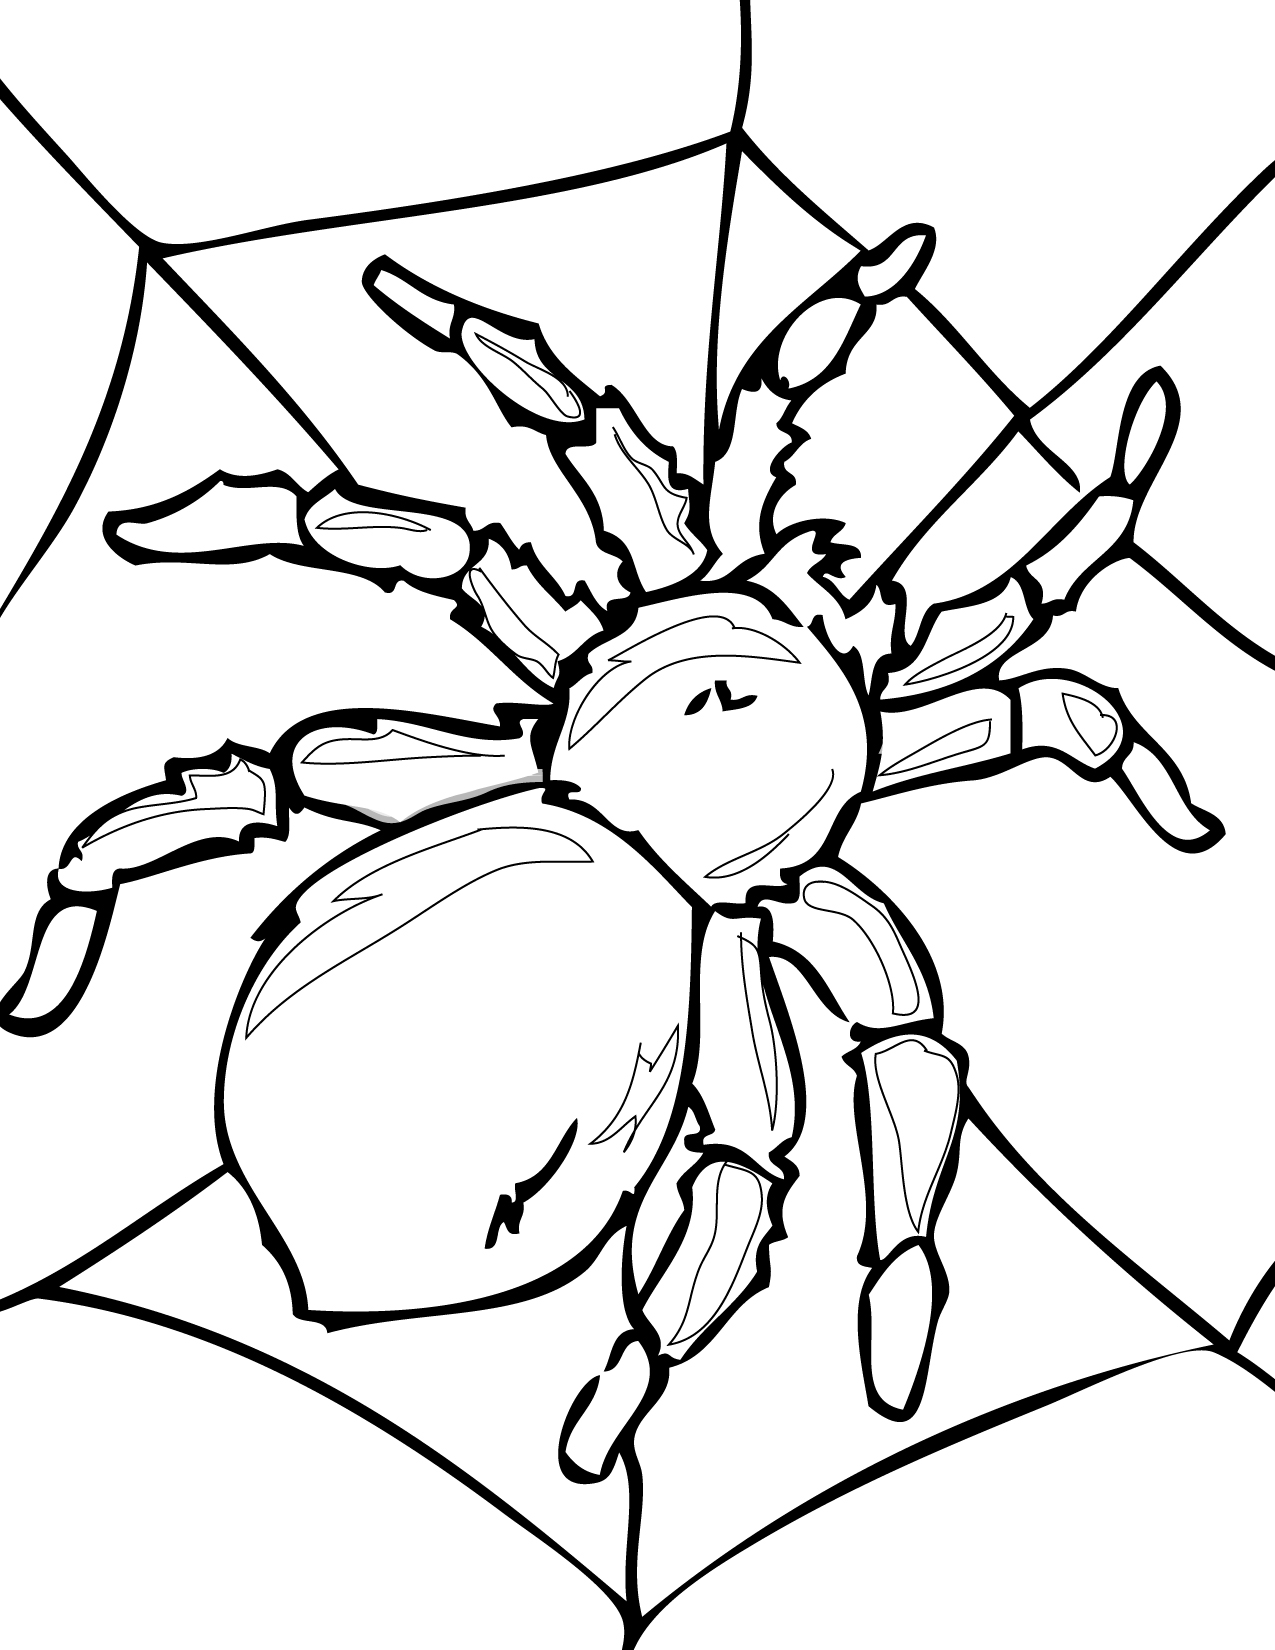 Tarantula Printable Coloring Pages